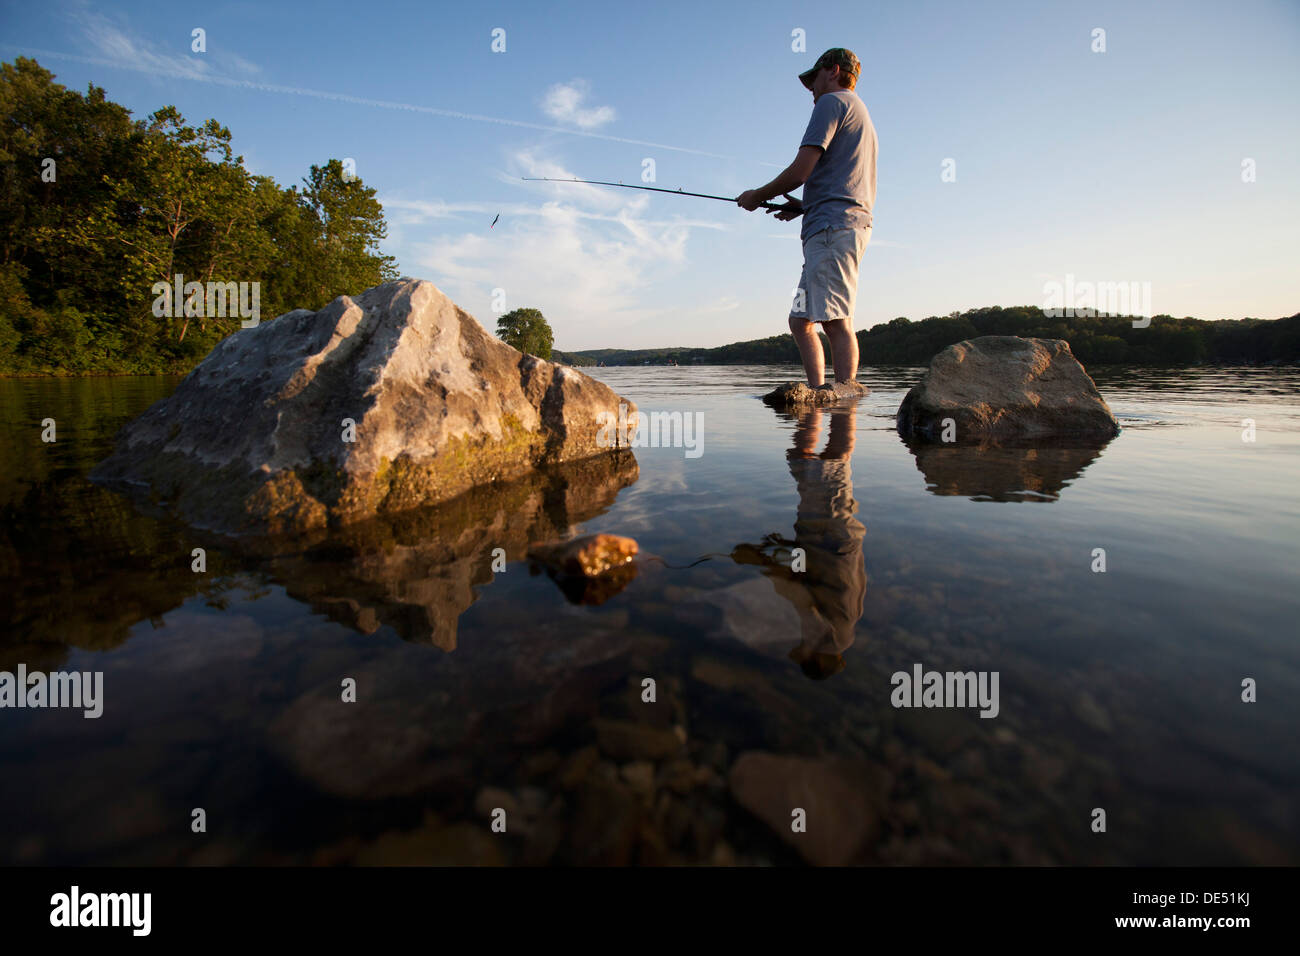 Un homme jette sa ligne alors que la pêche sur le Lac Windsor à Bella Vista, Arkansas. Photo Stock